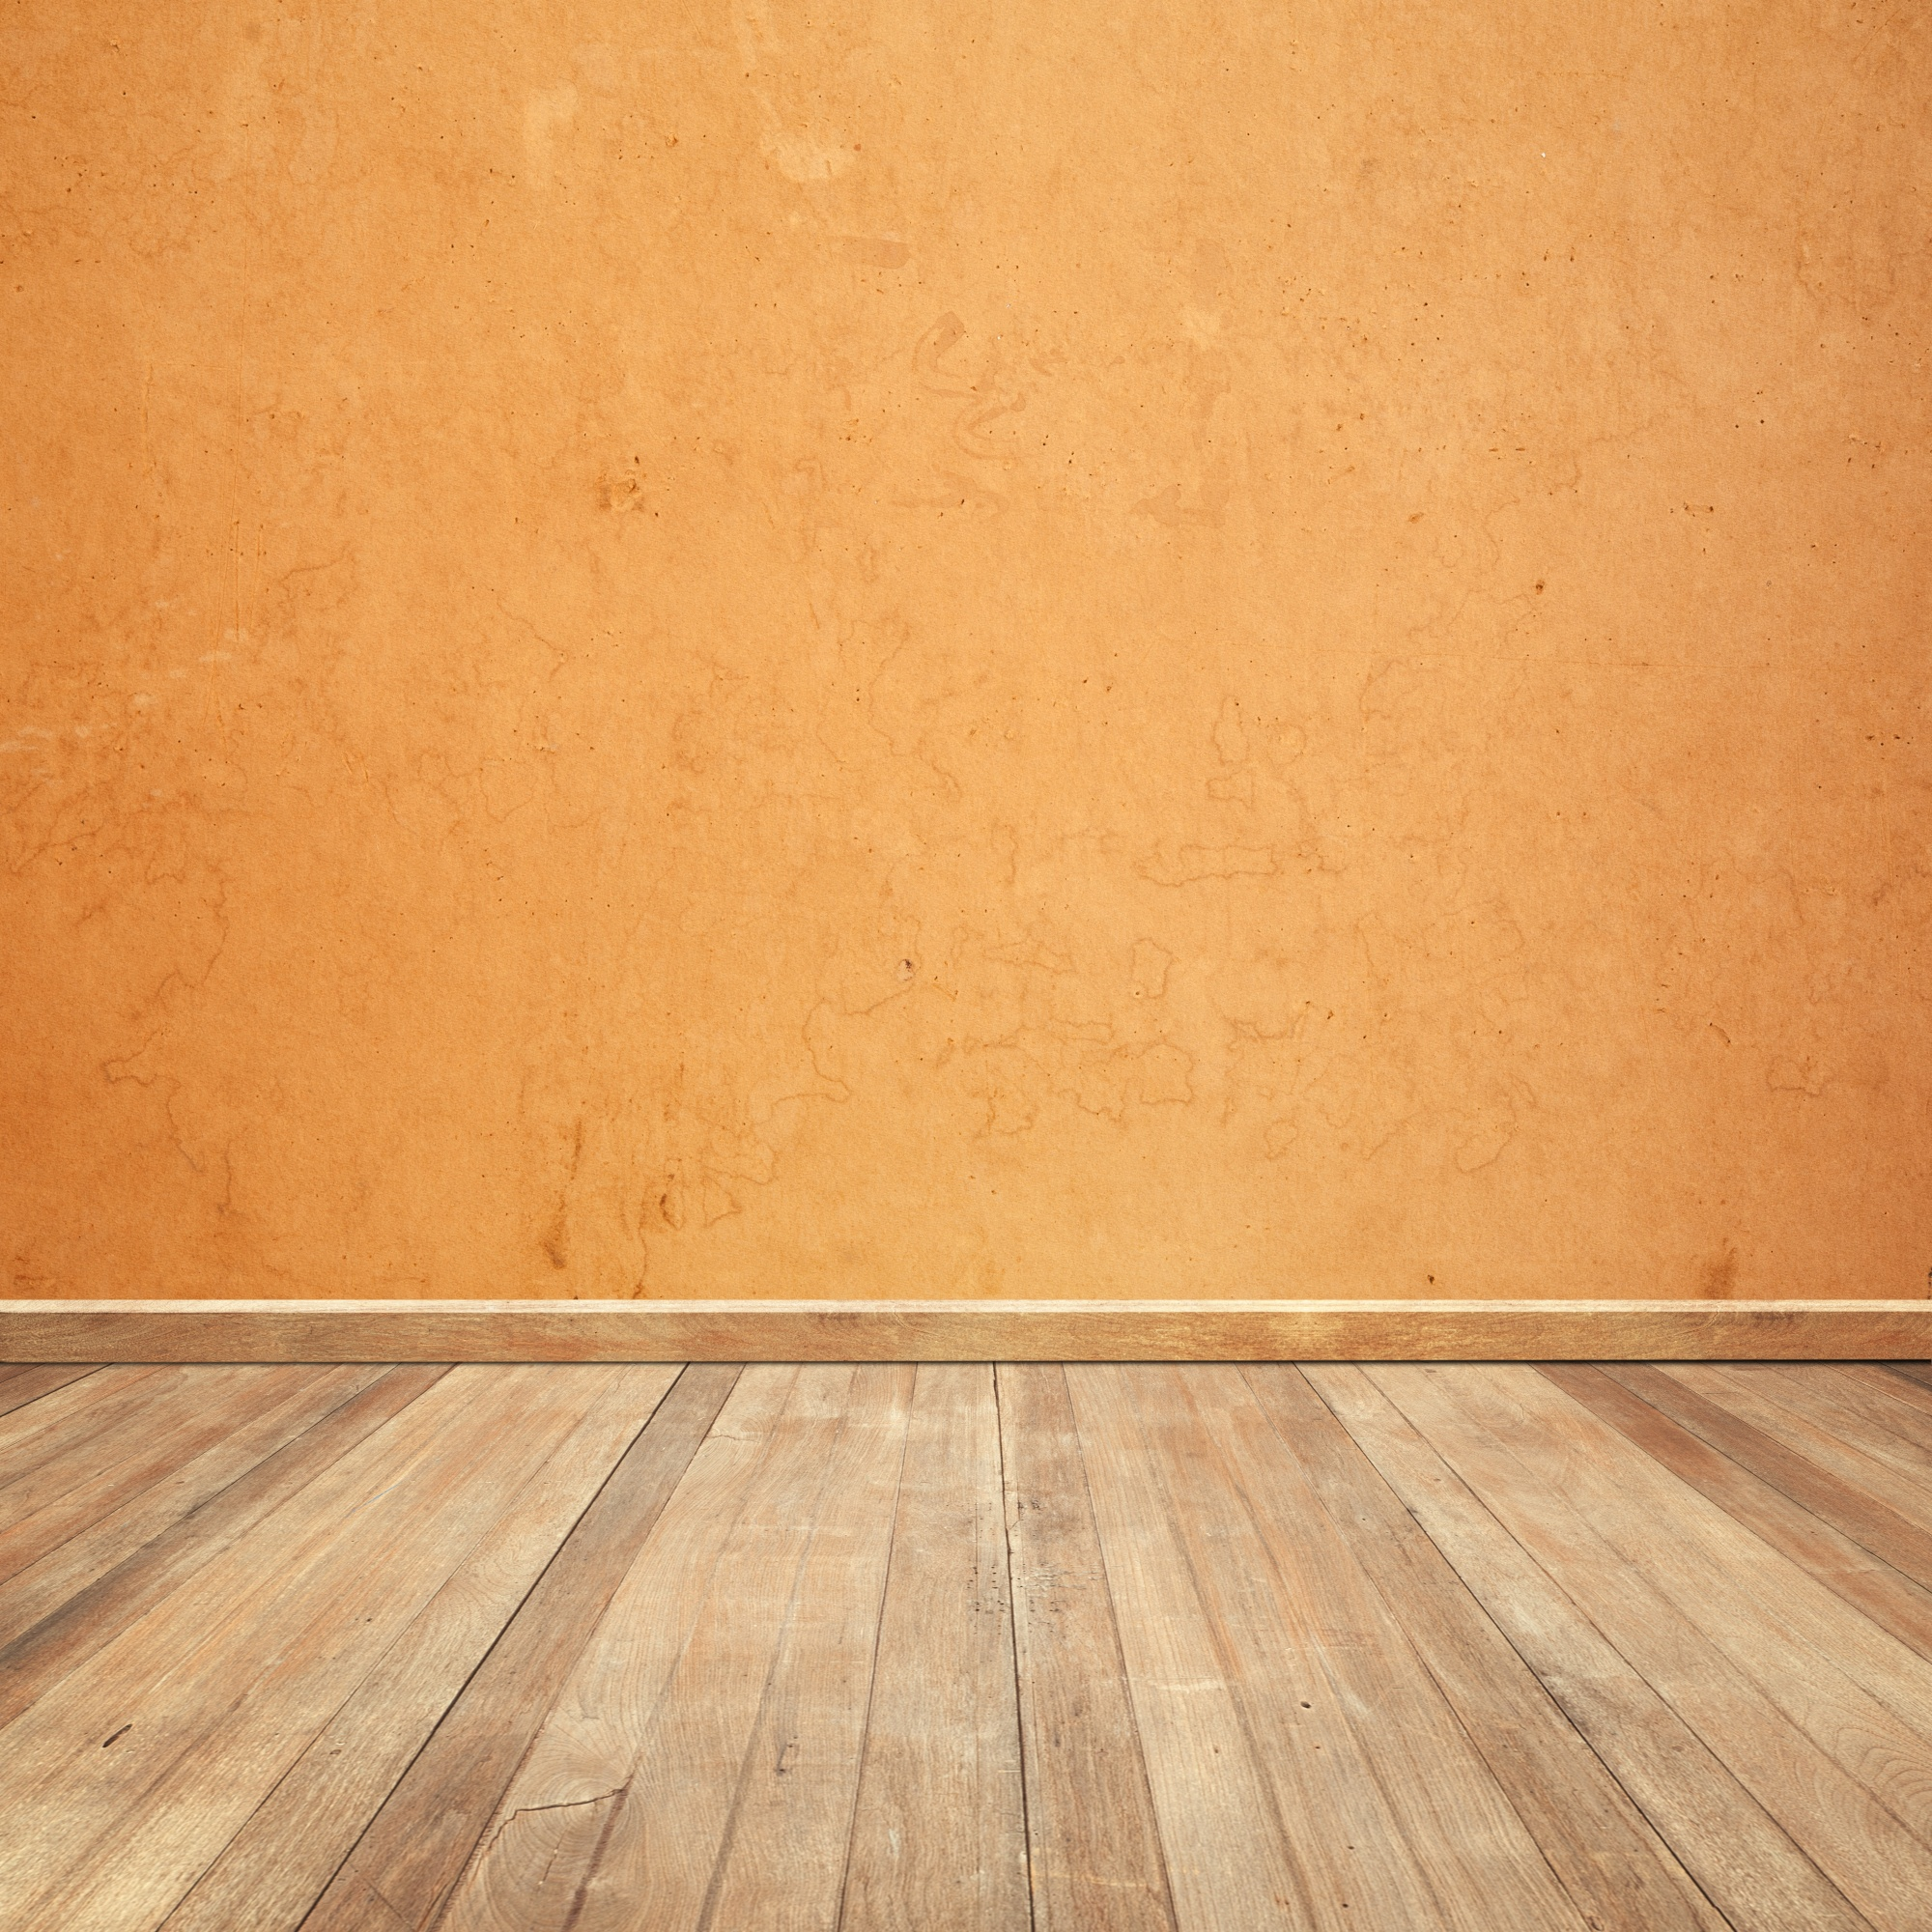 Wooden floor with an orange wall background